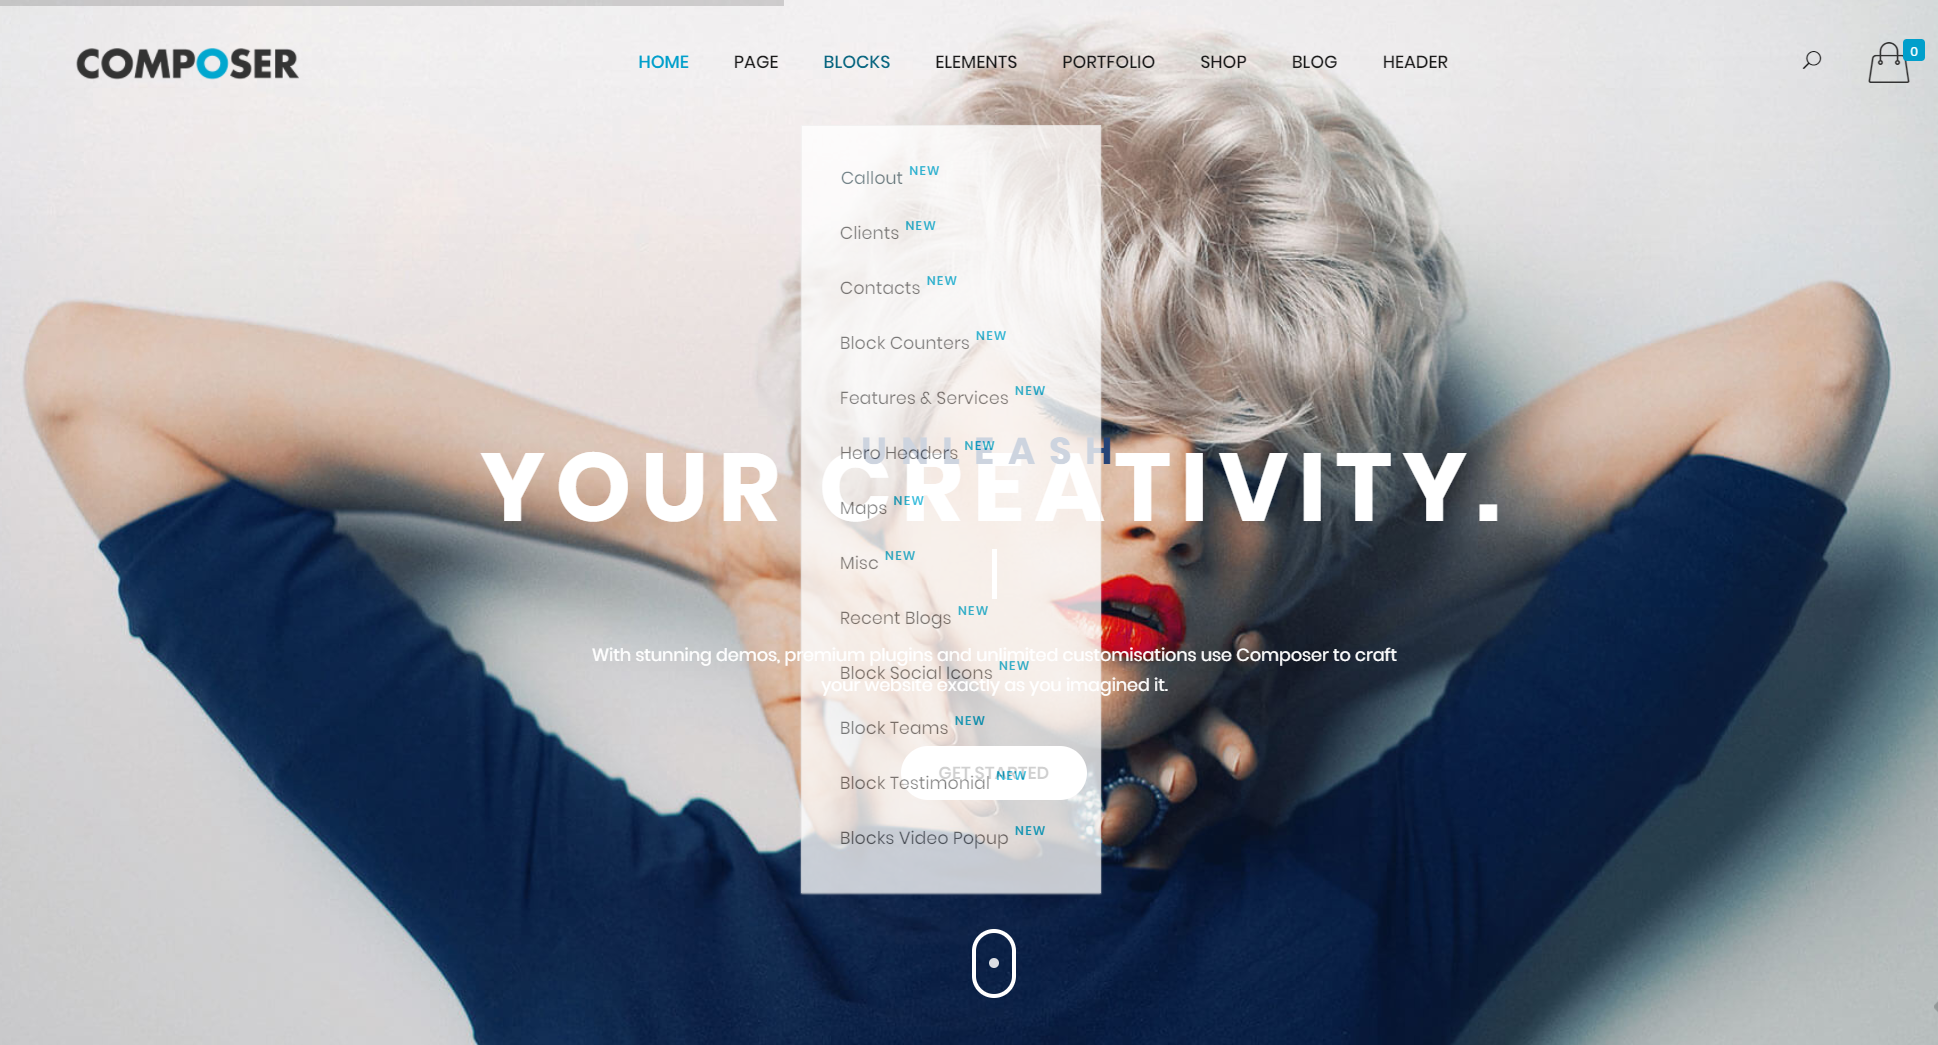 noupe THE magazine for webworkers and site owners